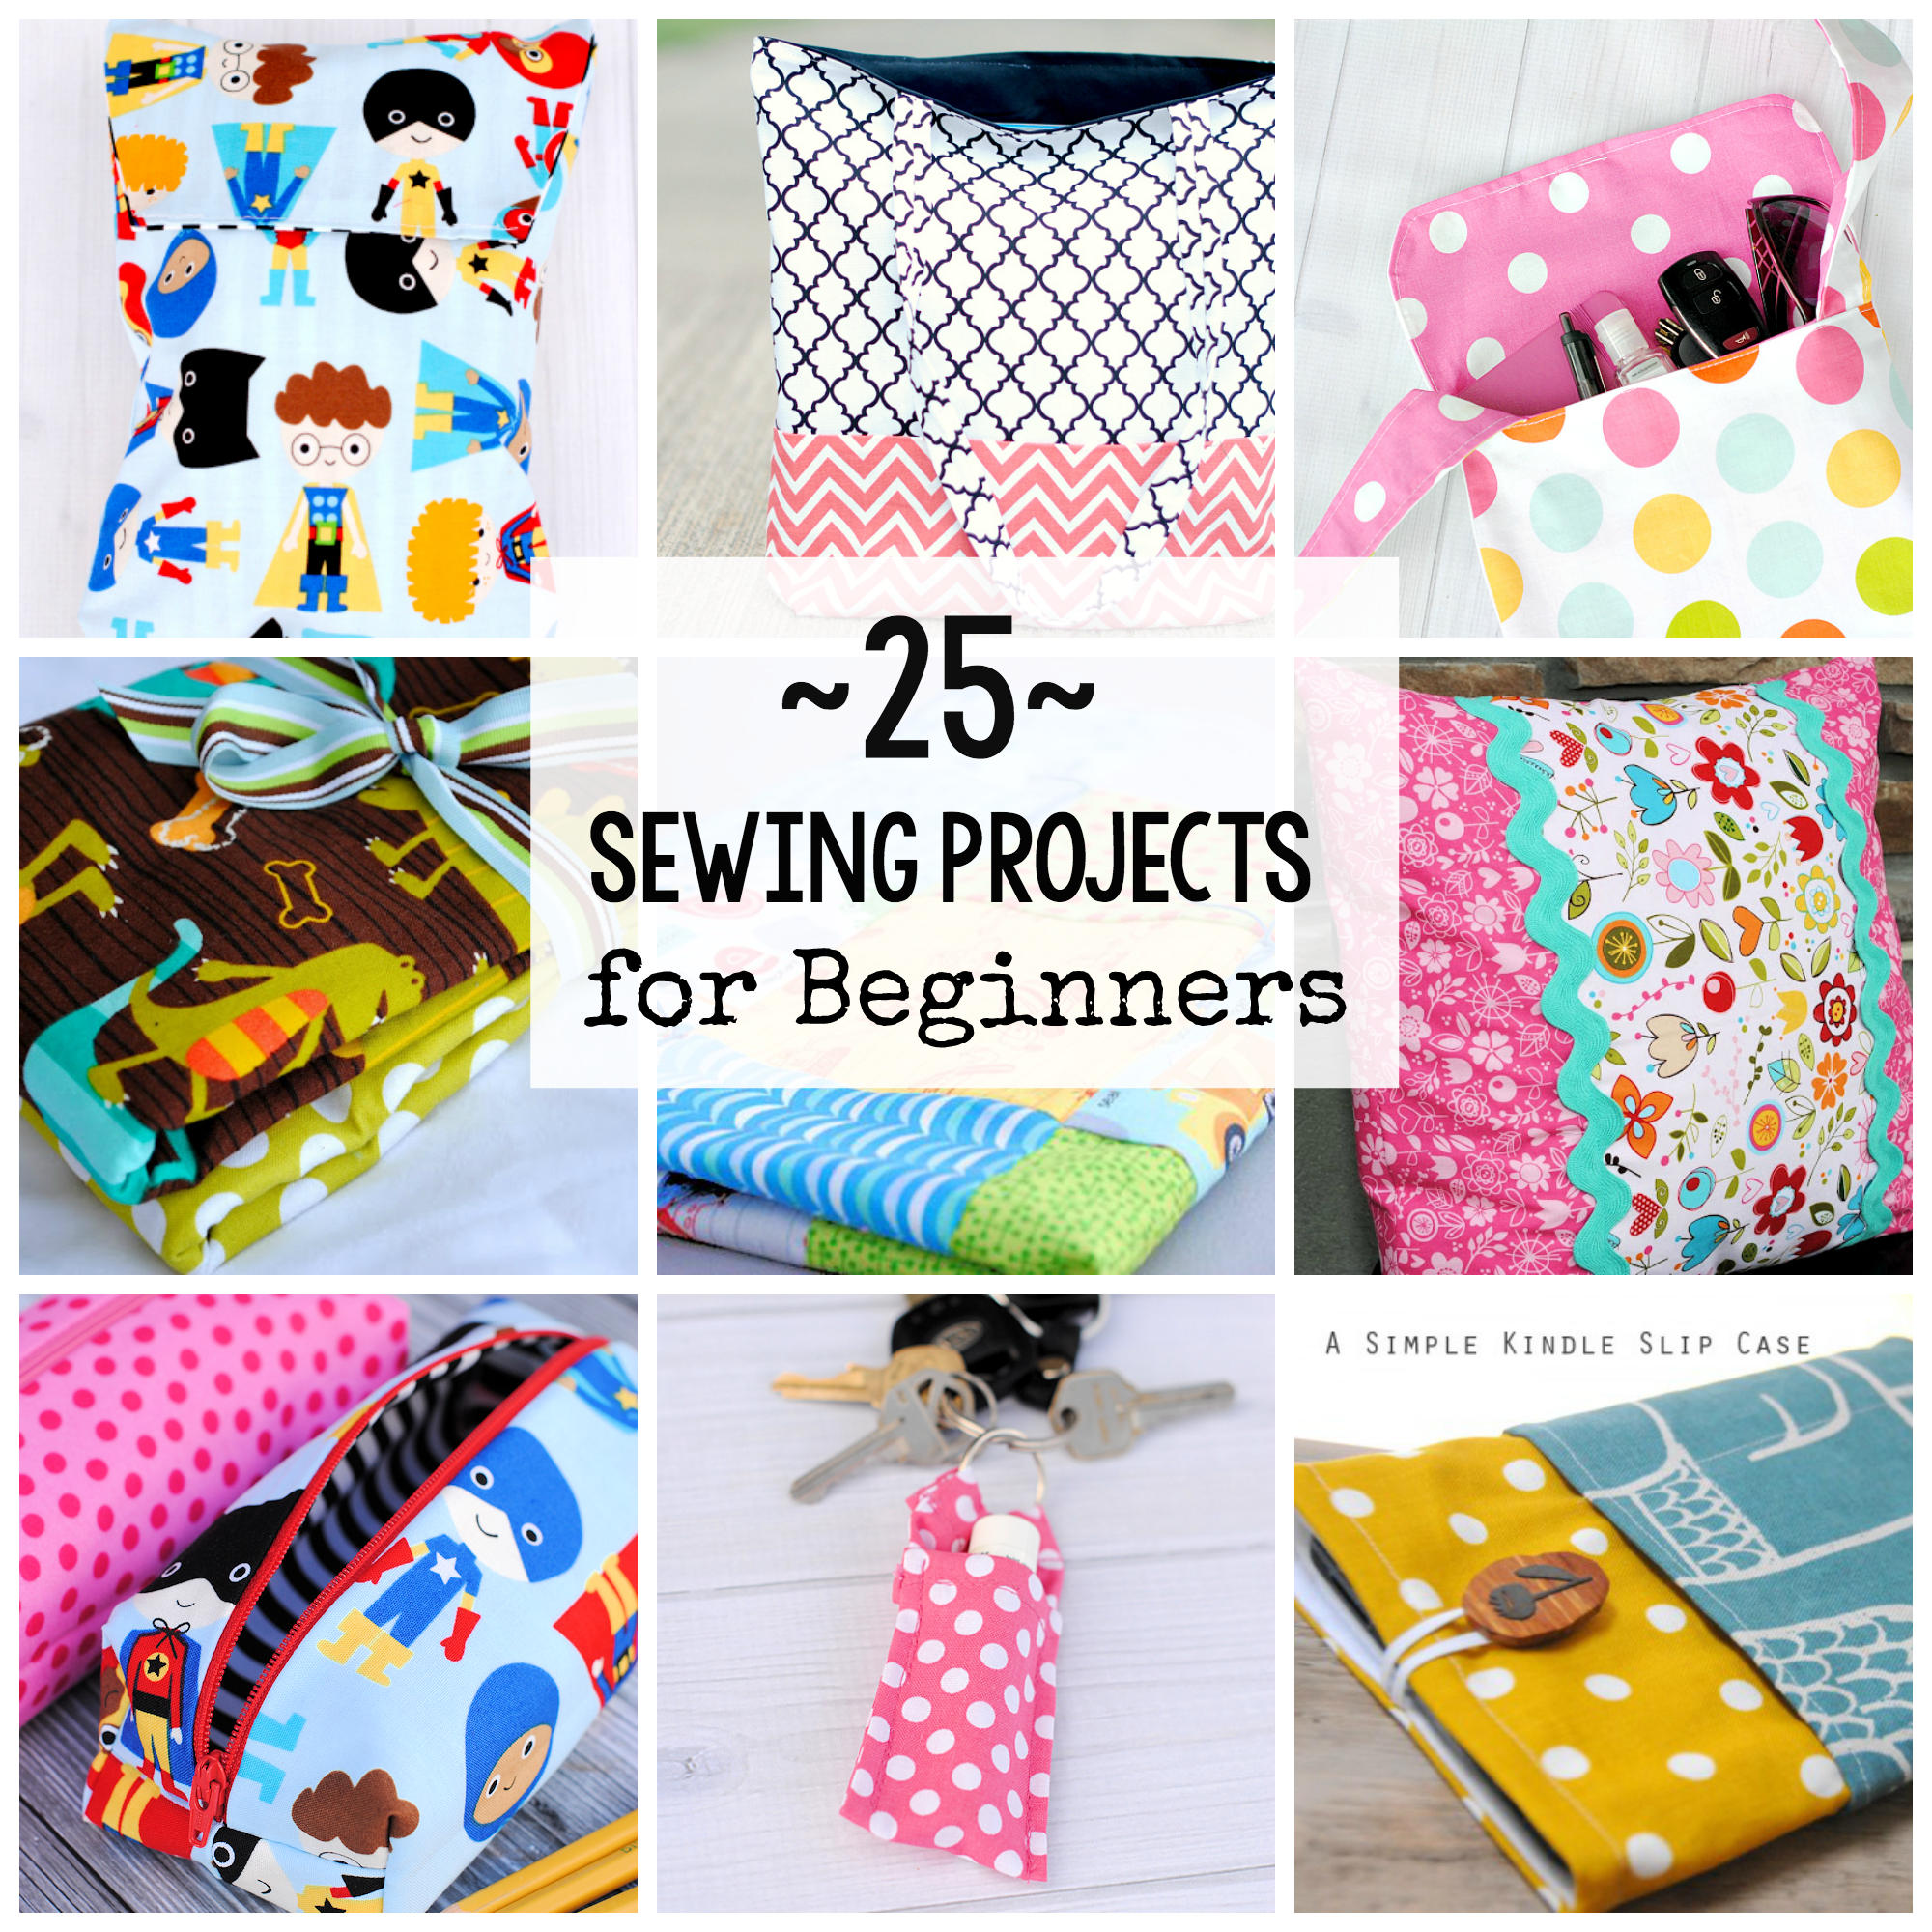 Sewing starter kit gift basket crazy little projects